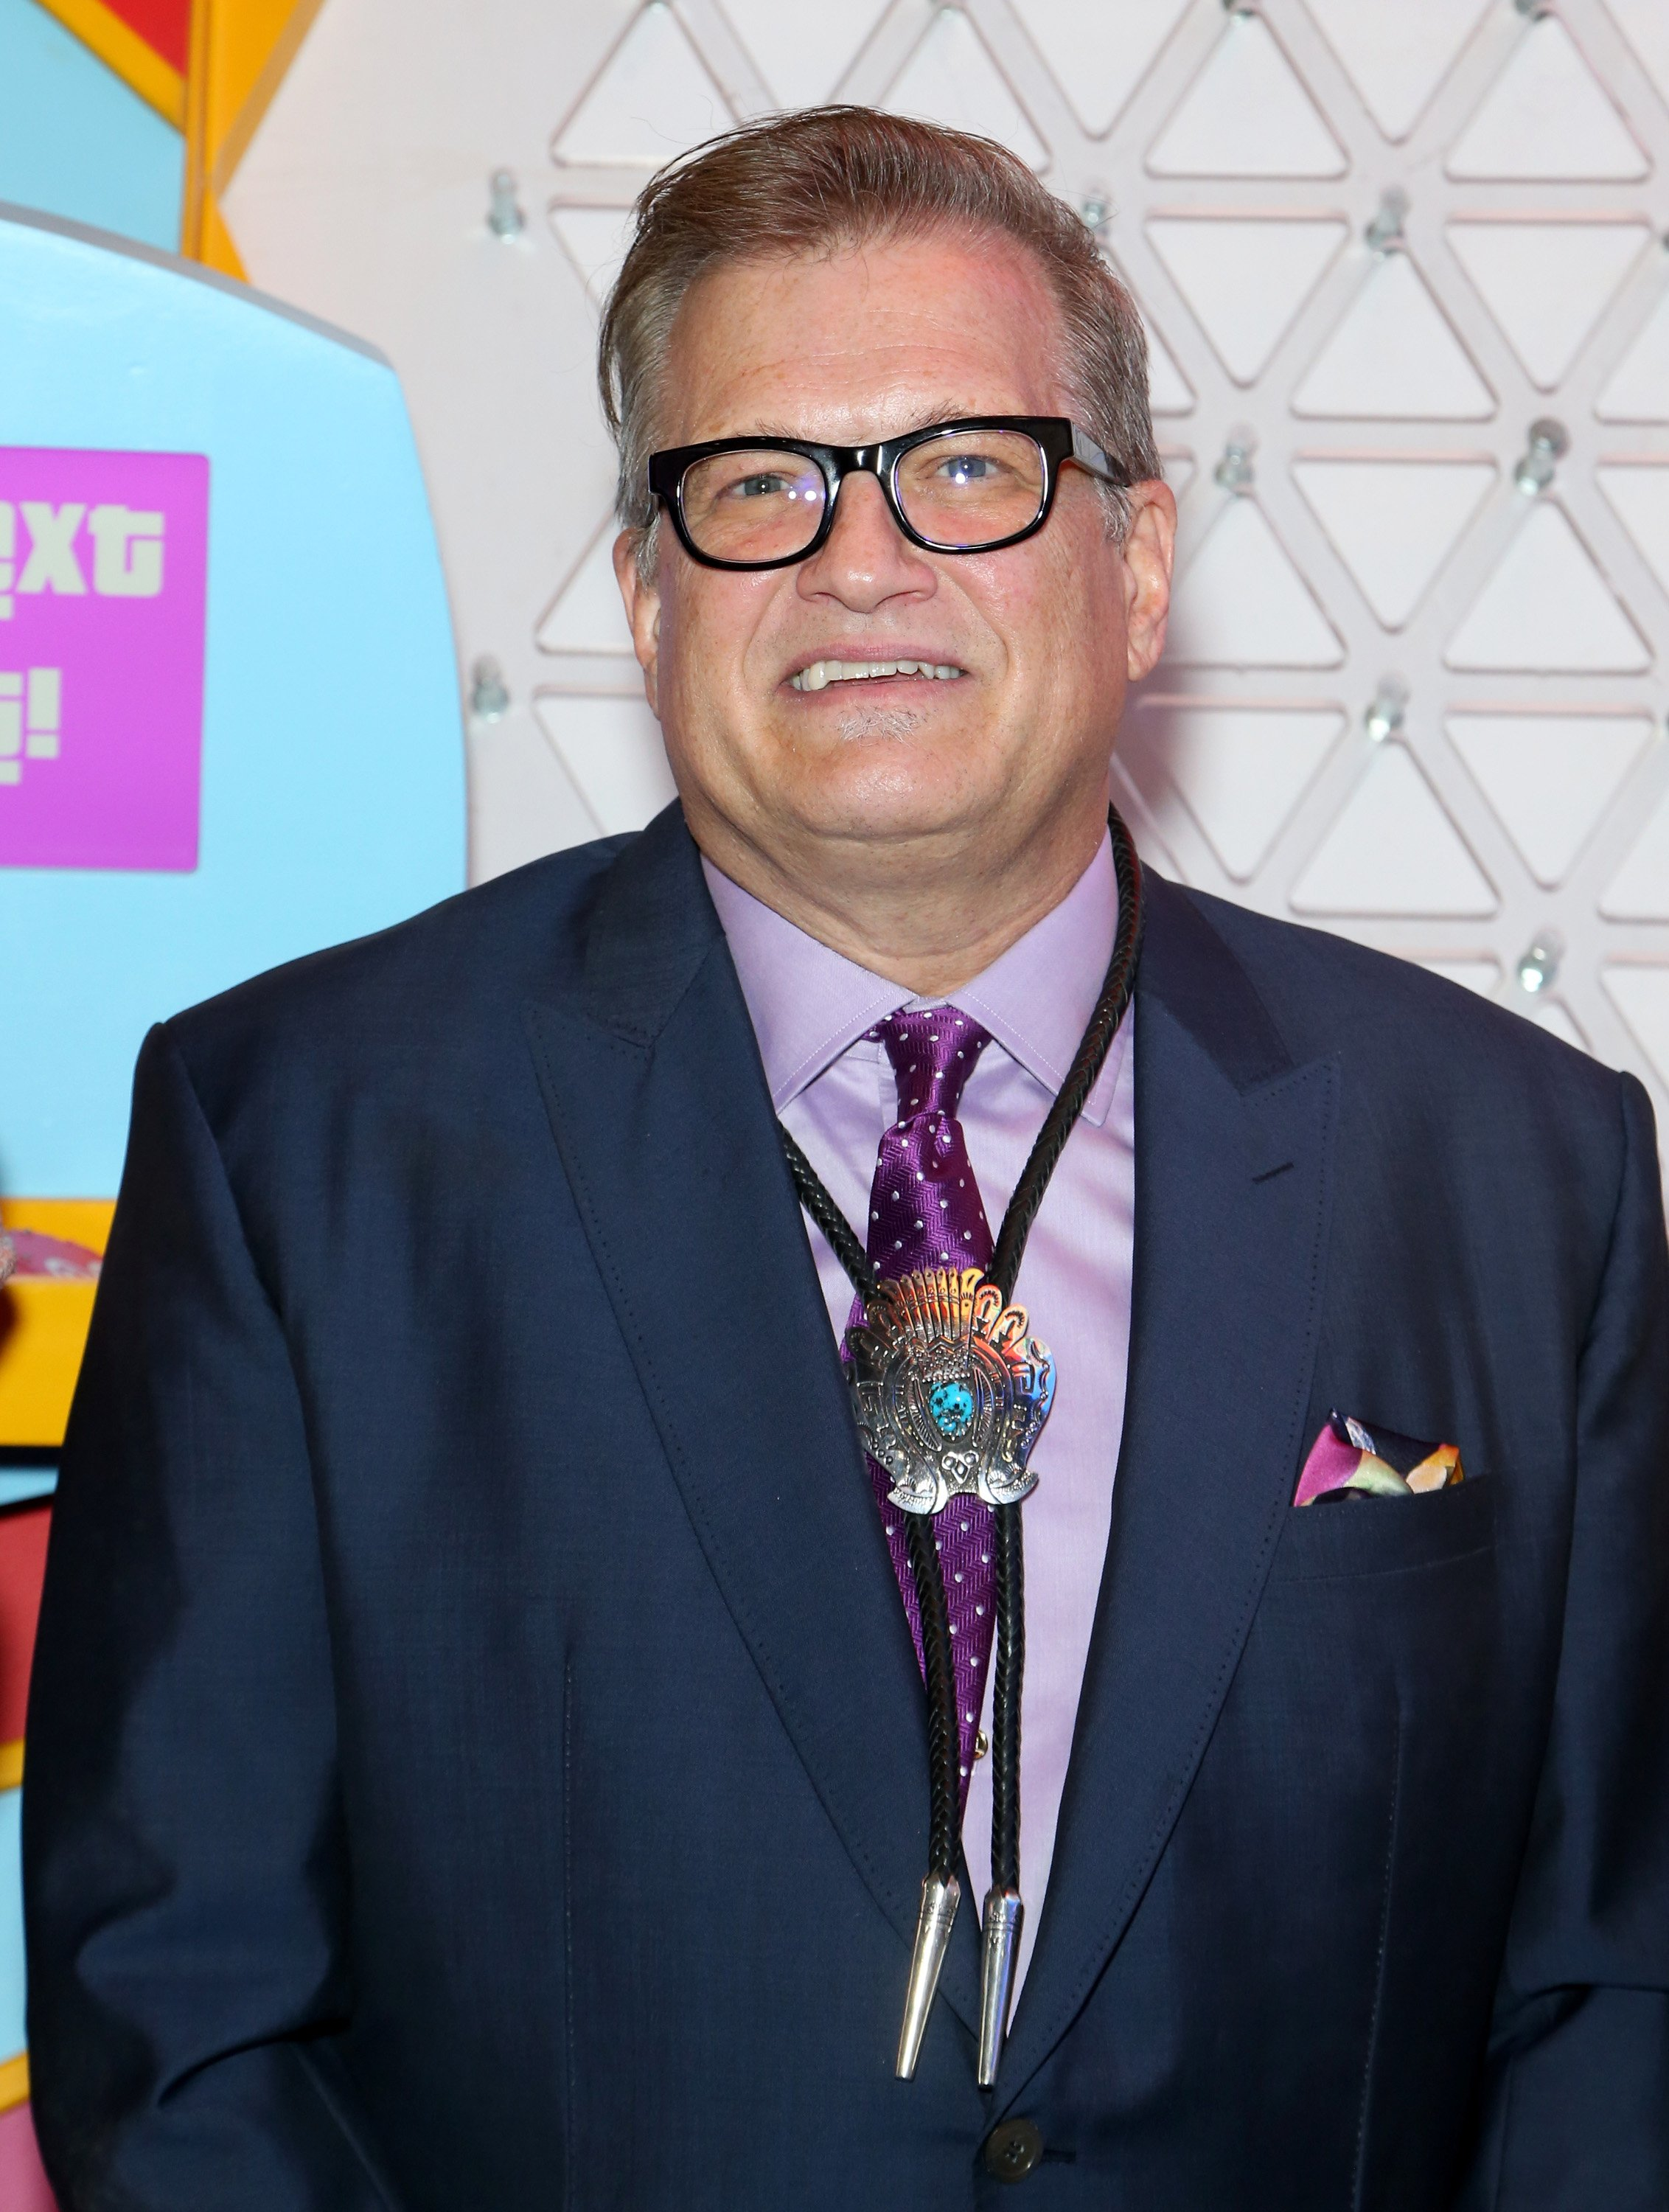 Drew Carey poses in front of a Plinko game at the Sands Expo and Convention Center on October 10, 2018 in Las Vegas, Nevada   Photo: Getty Images